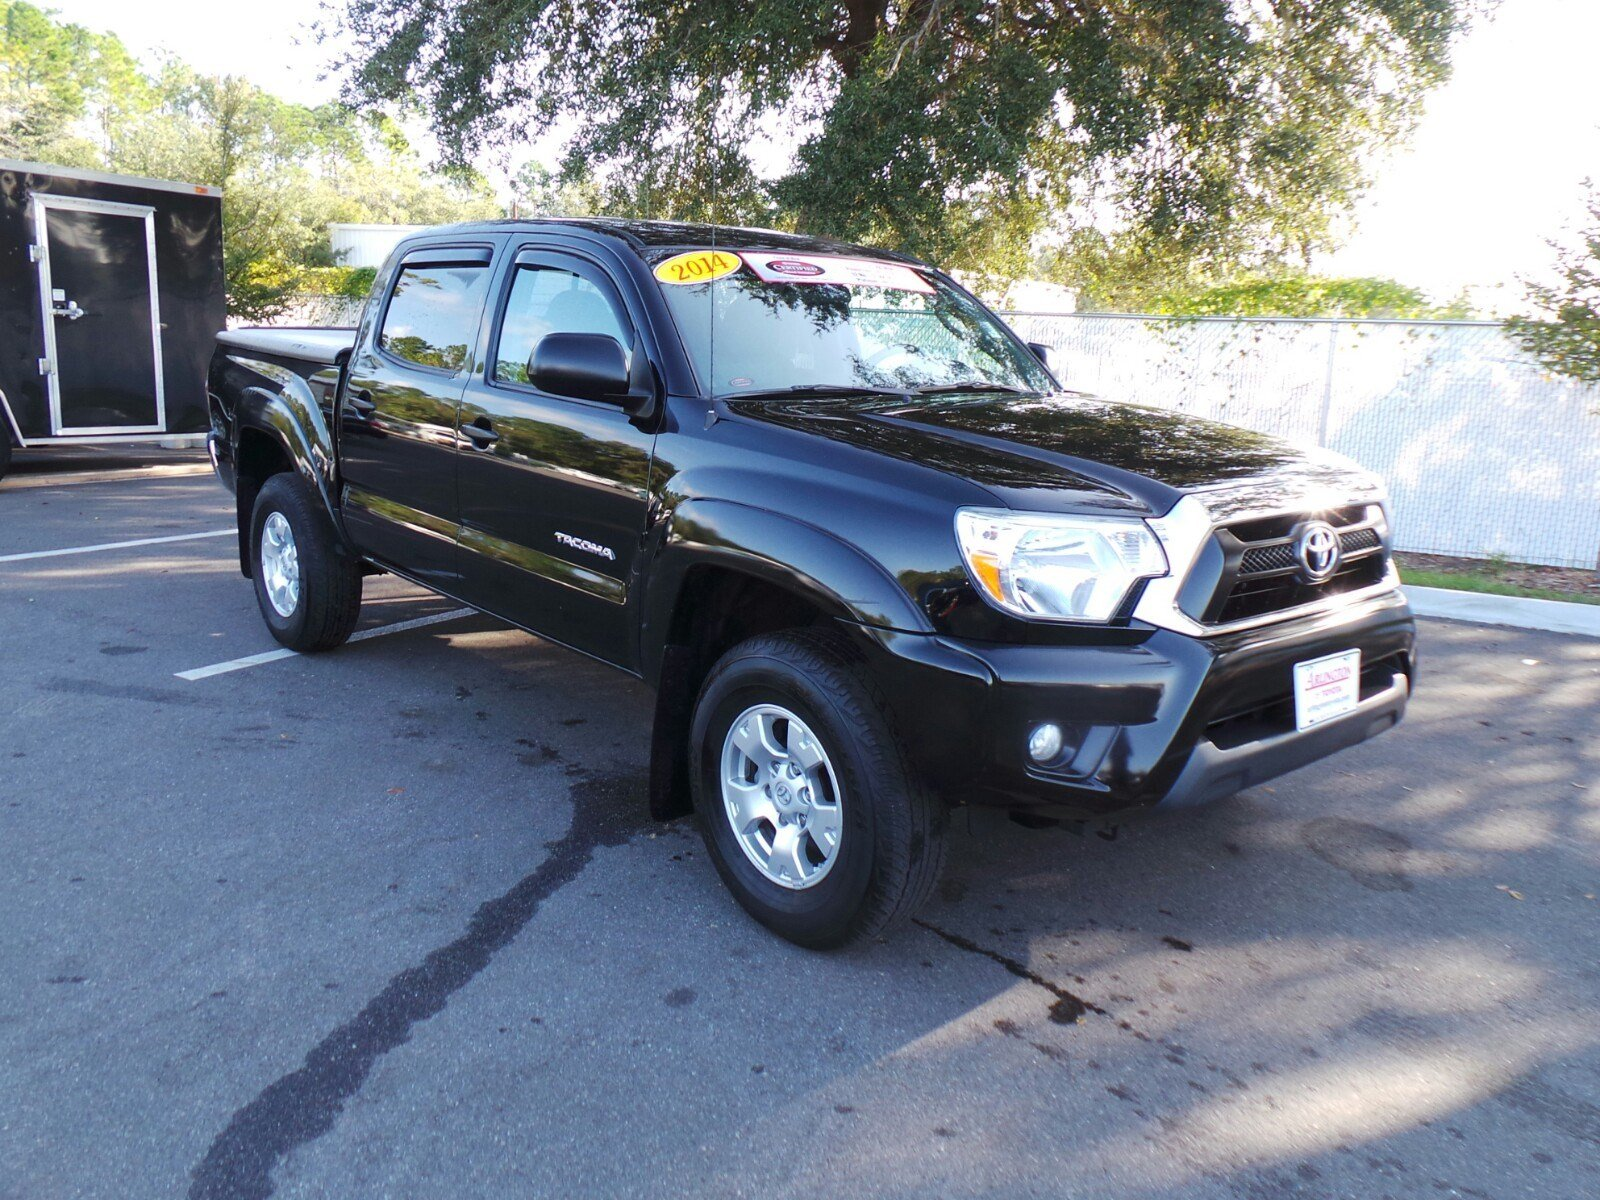 certified pre owned 2014 toyota tacoma prerunner double cab in jacksonville p8147 arlington. Black Bedroom Furniture Sets. Home Design Ideas